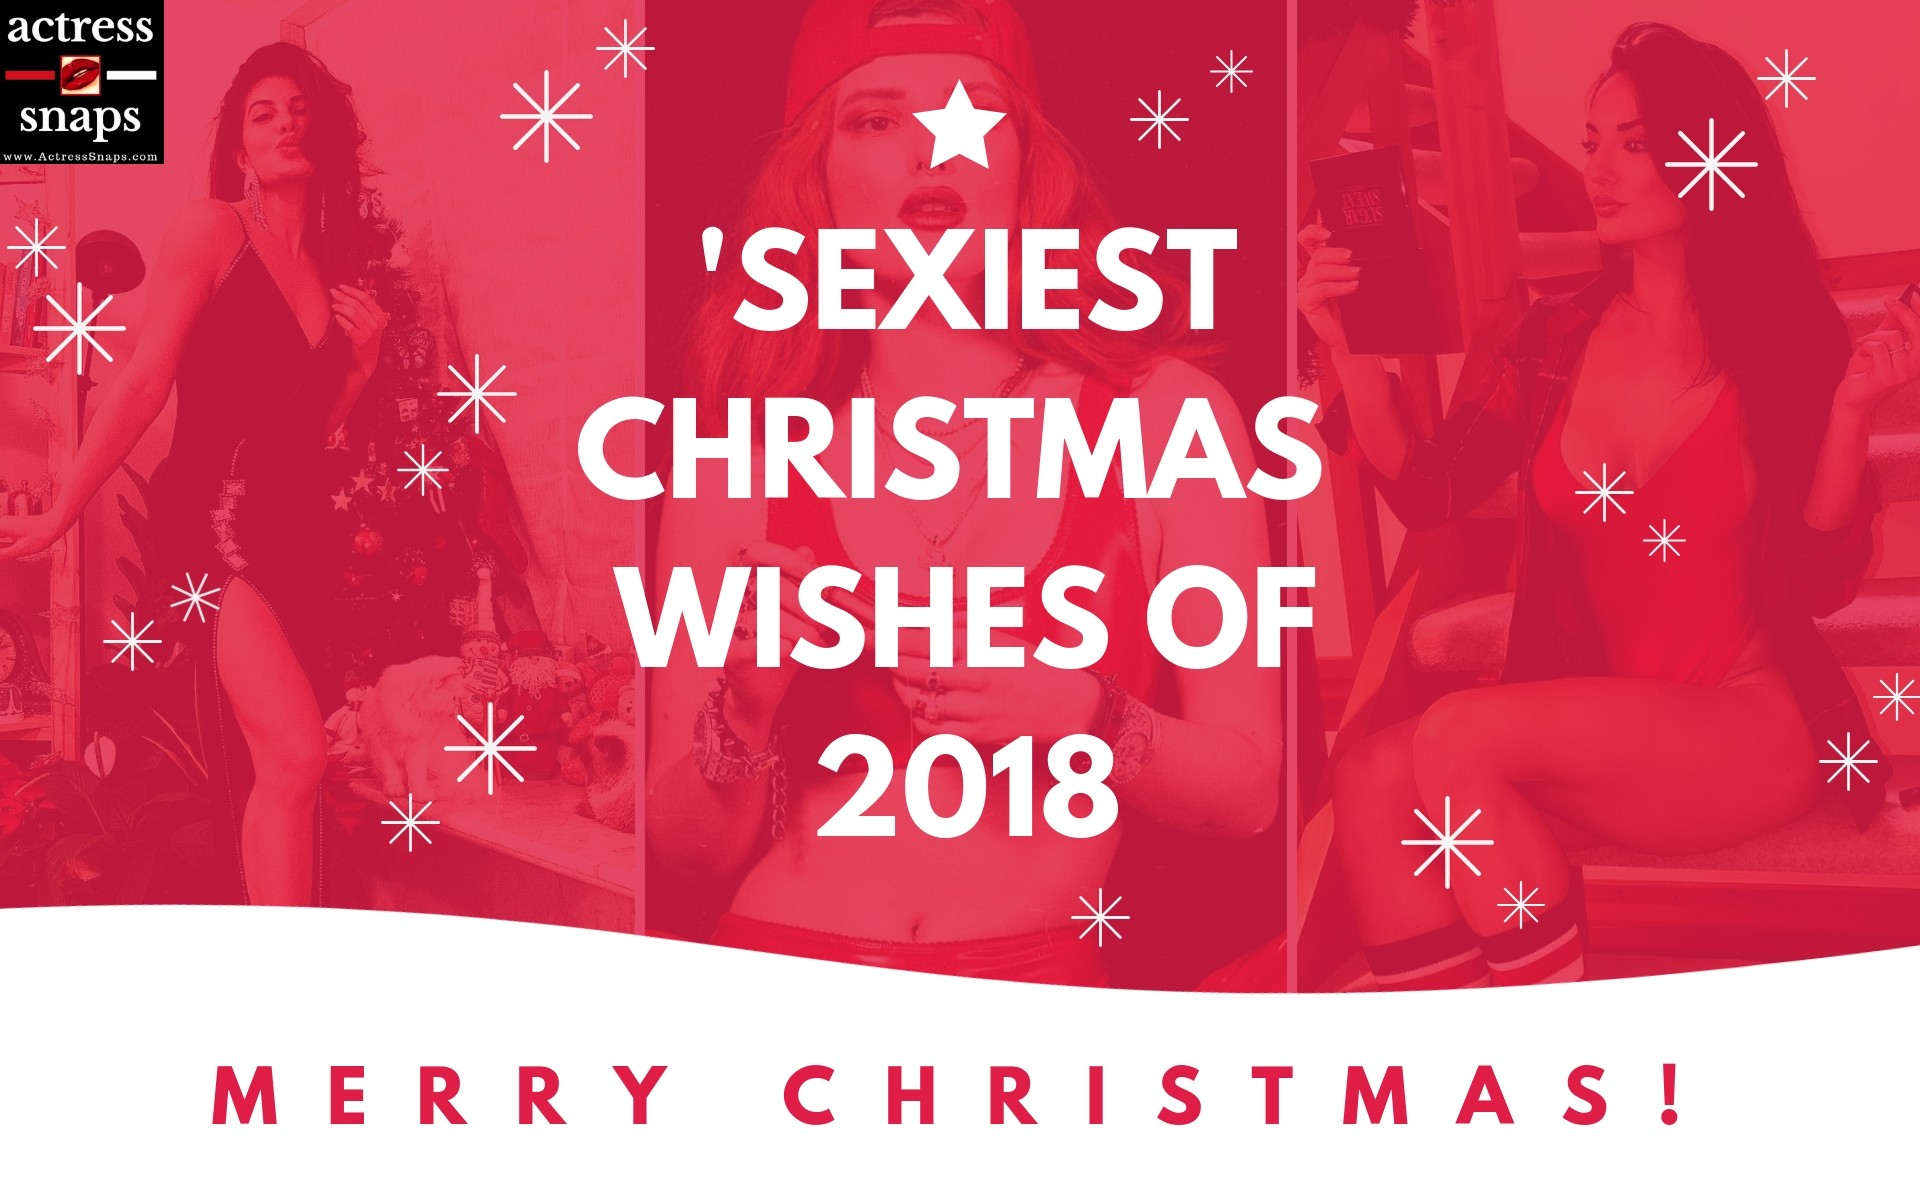 Sexy Christmas Wishes from Your Favourite Celebrity - Sexy Actress Pictures | Hot Actress Pictures - ActressSnaps.com